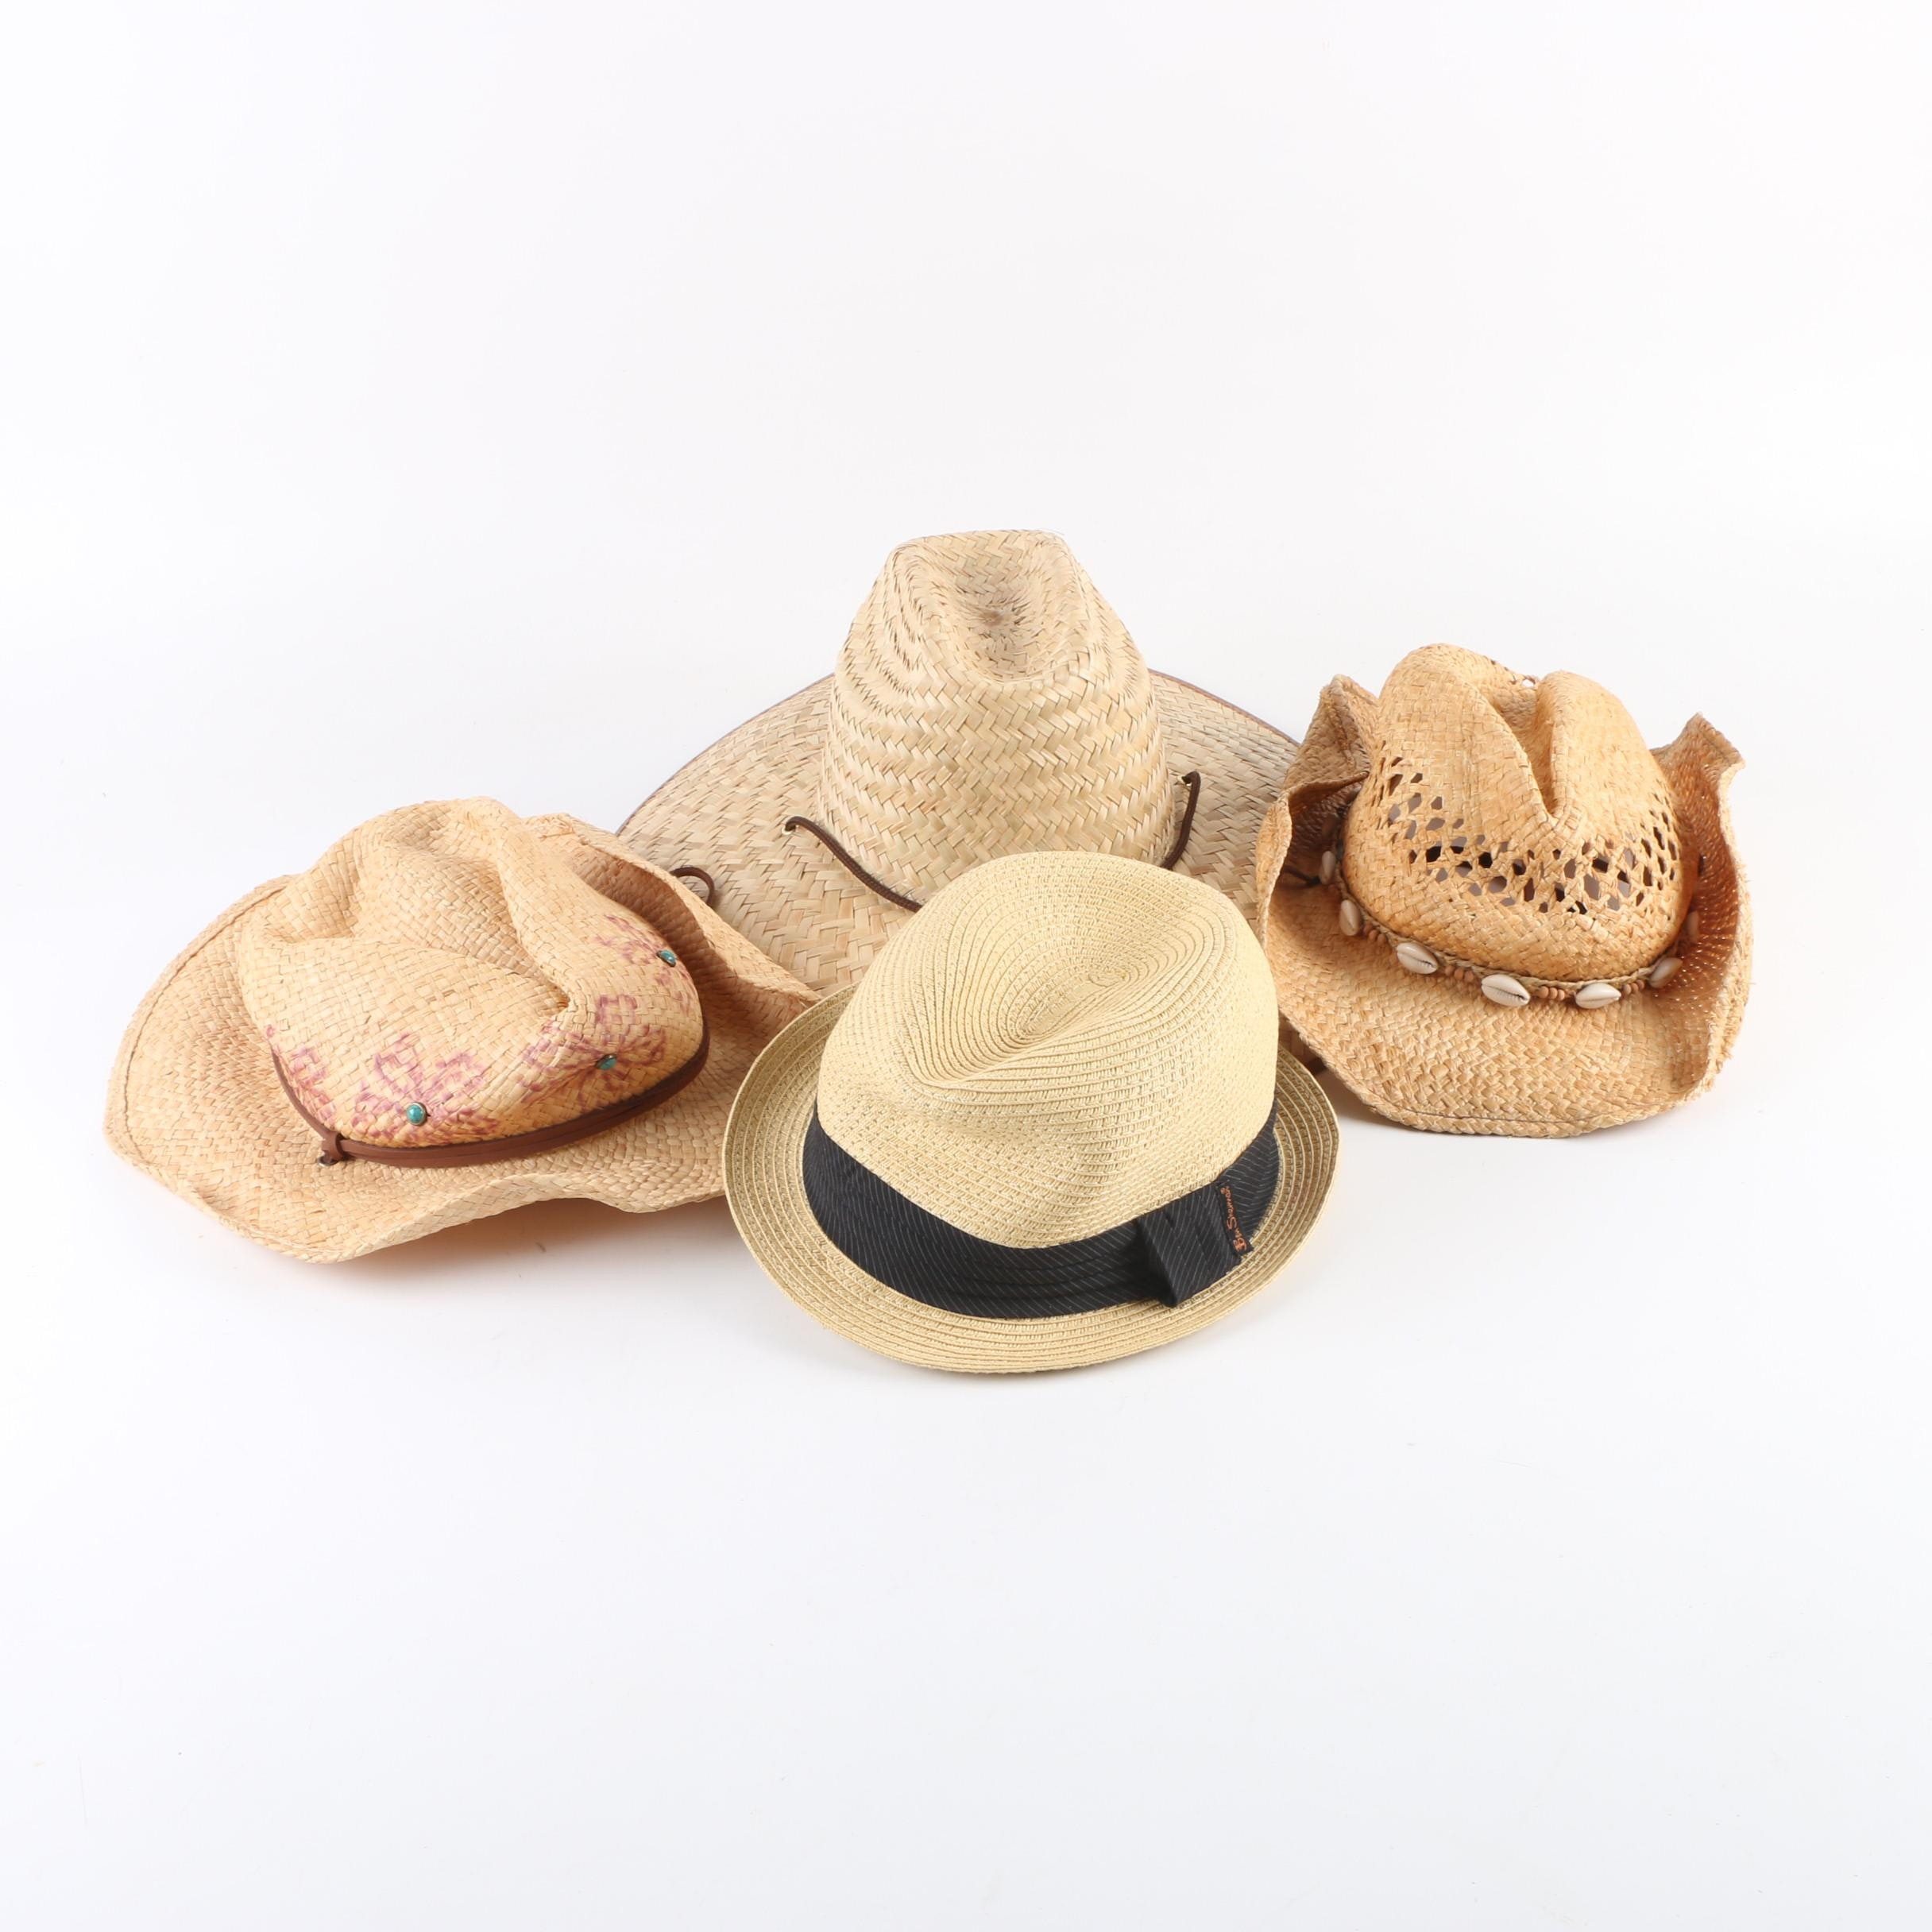 Men's Straw Hats Including Ben Sherman and Scala